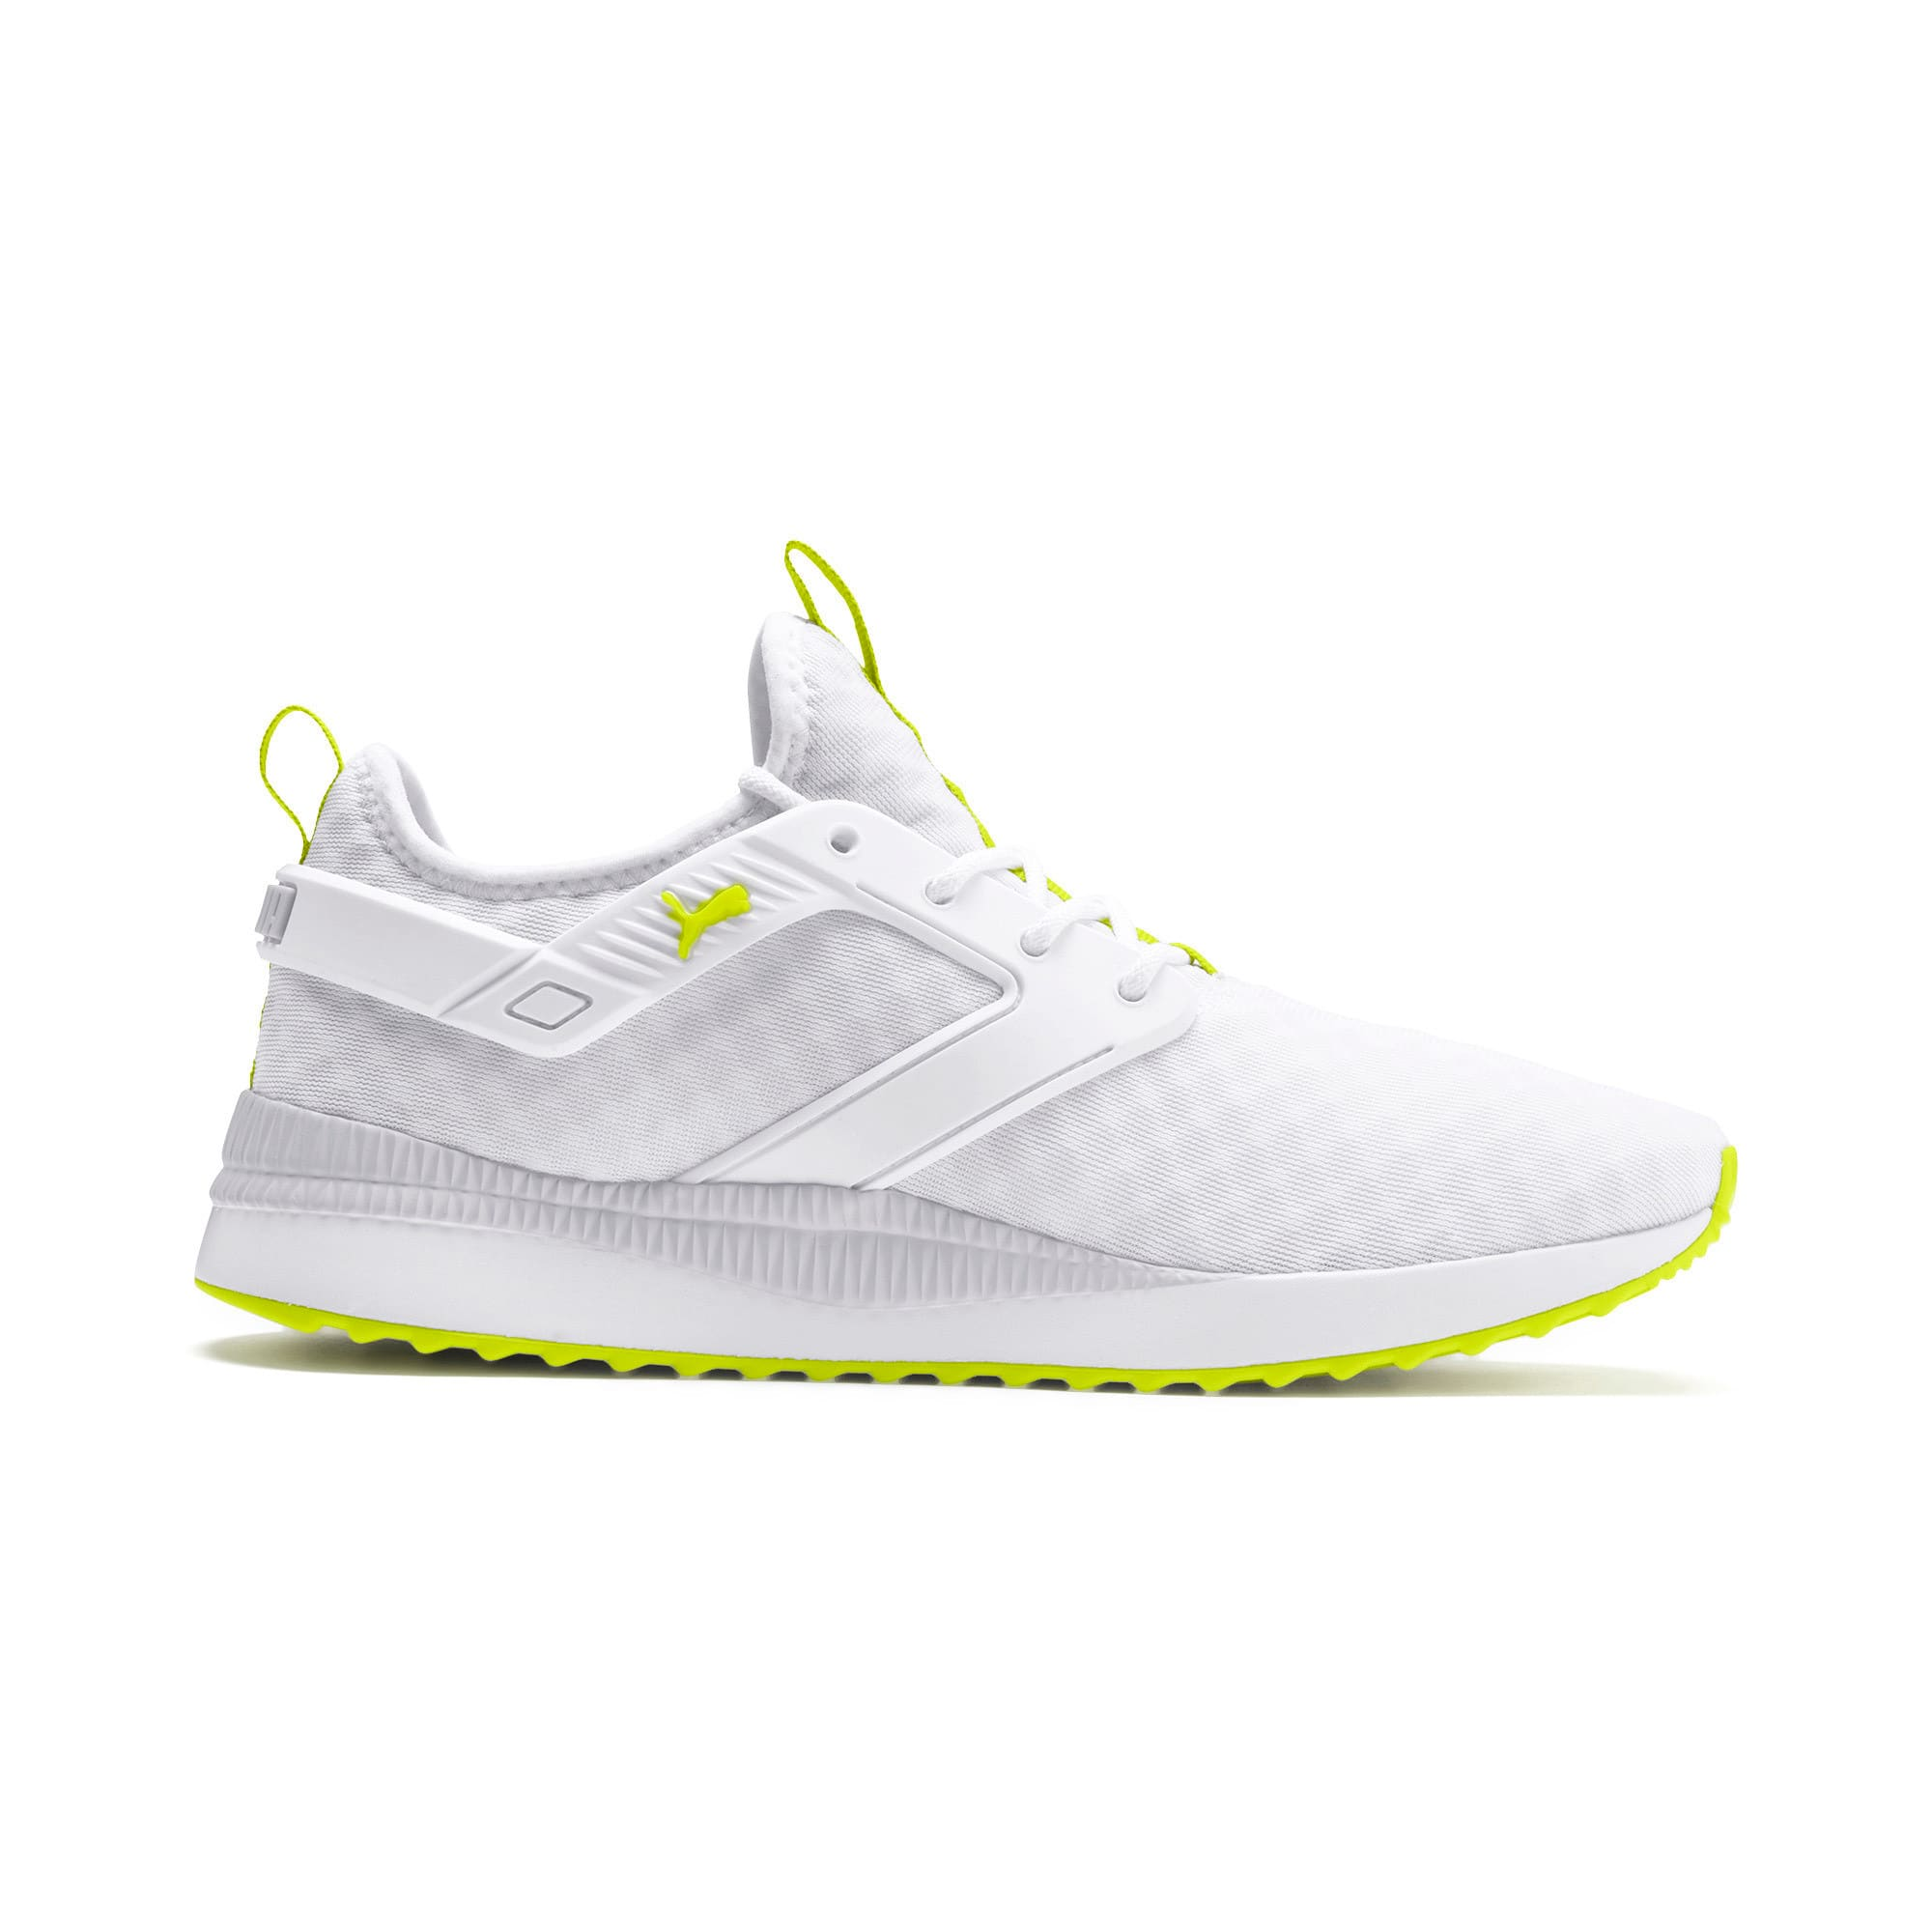 Thumbnail 6 of Pacer Next Excel Core Sneakers, Puma White-Nrgy Yellow, medium